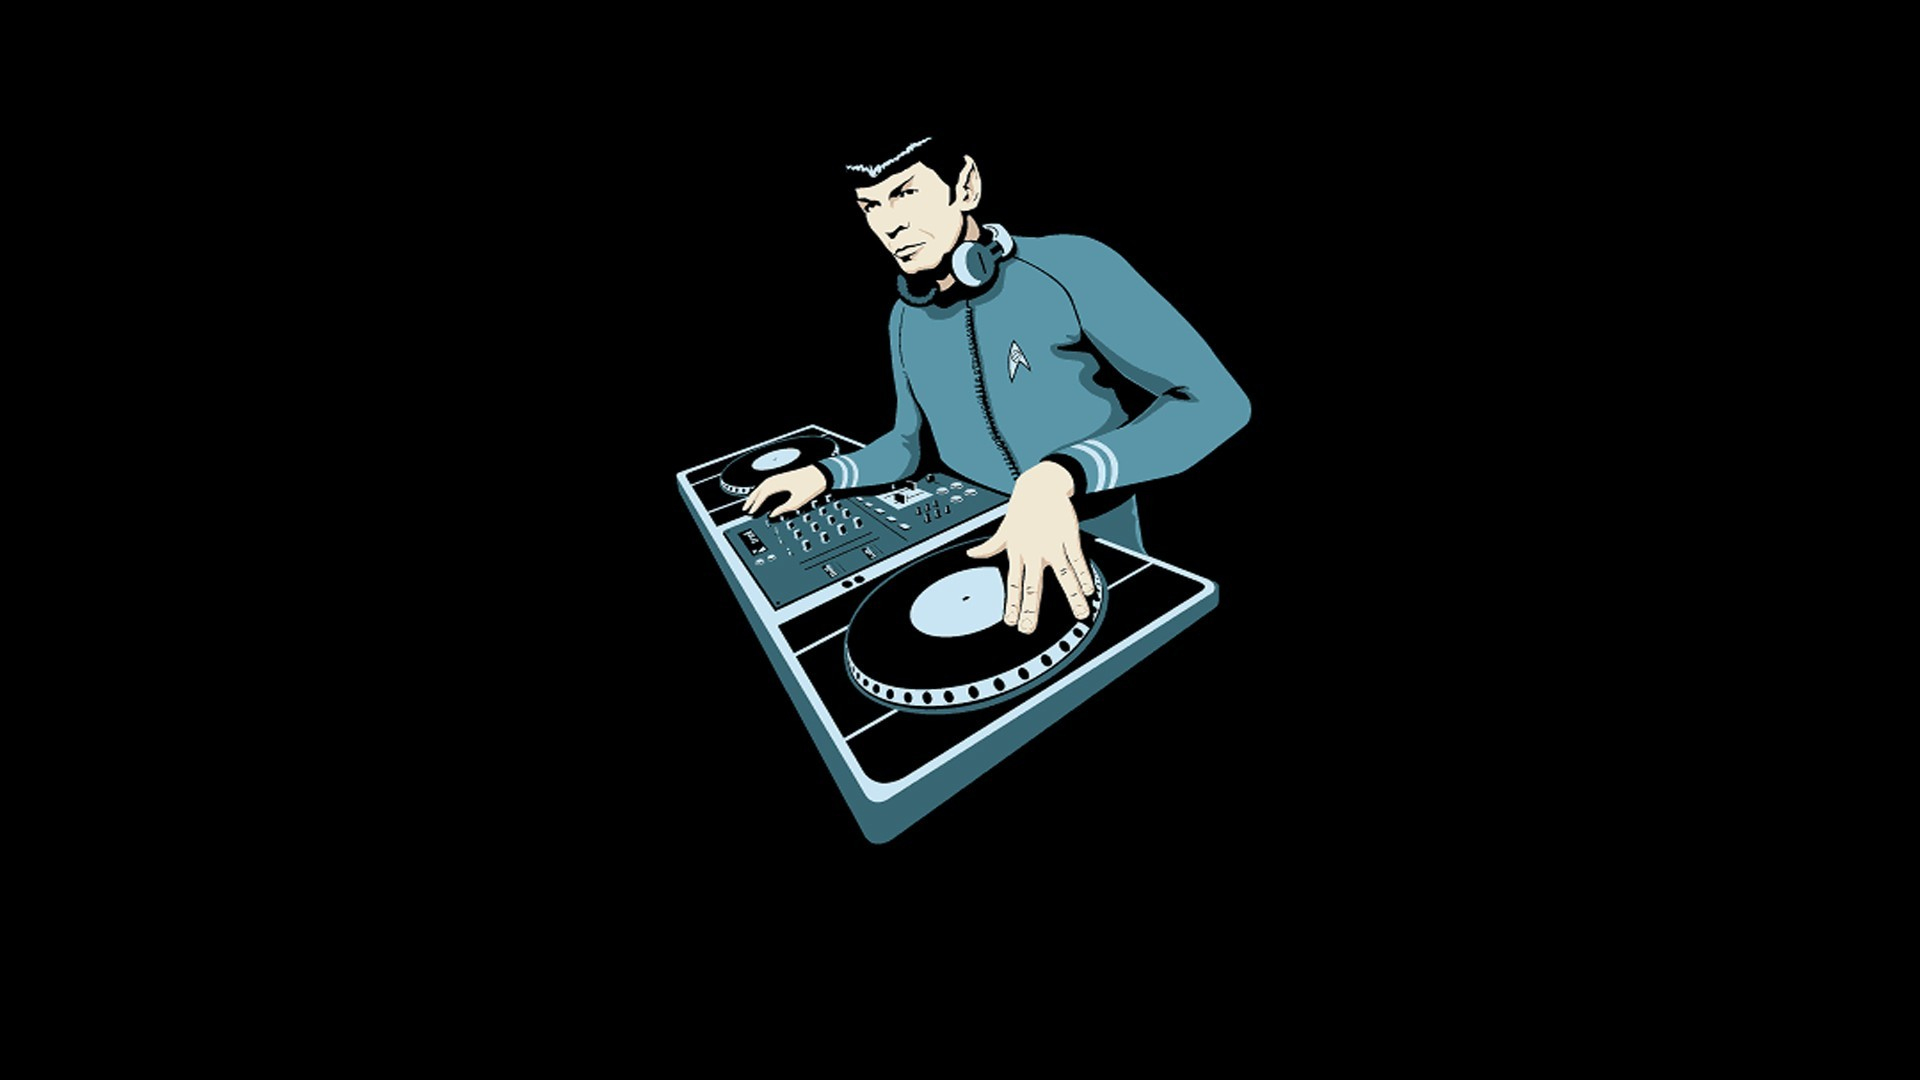 DJ Spook, Music, Sound Full HD wallpaper download to PC, Mobile or Table  PC. You can also set as Facebook Cover